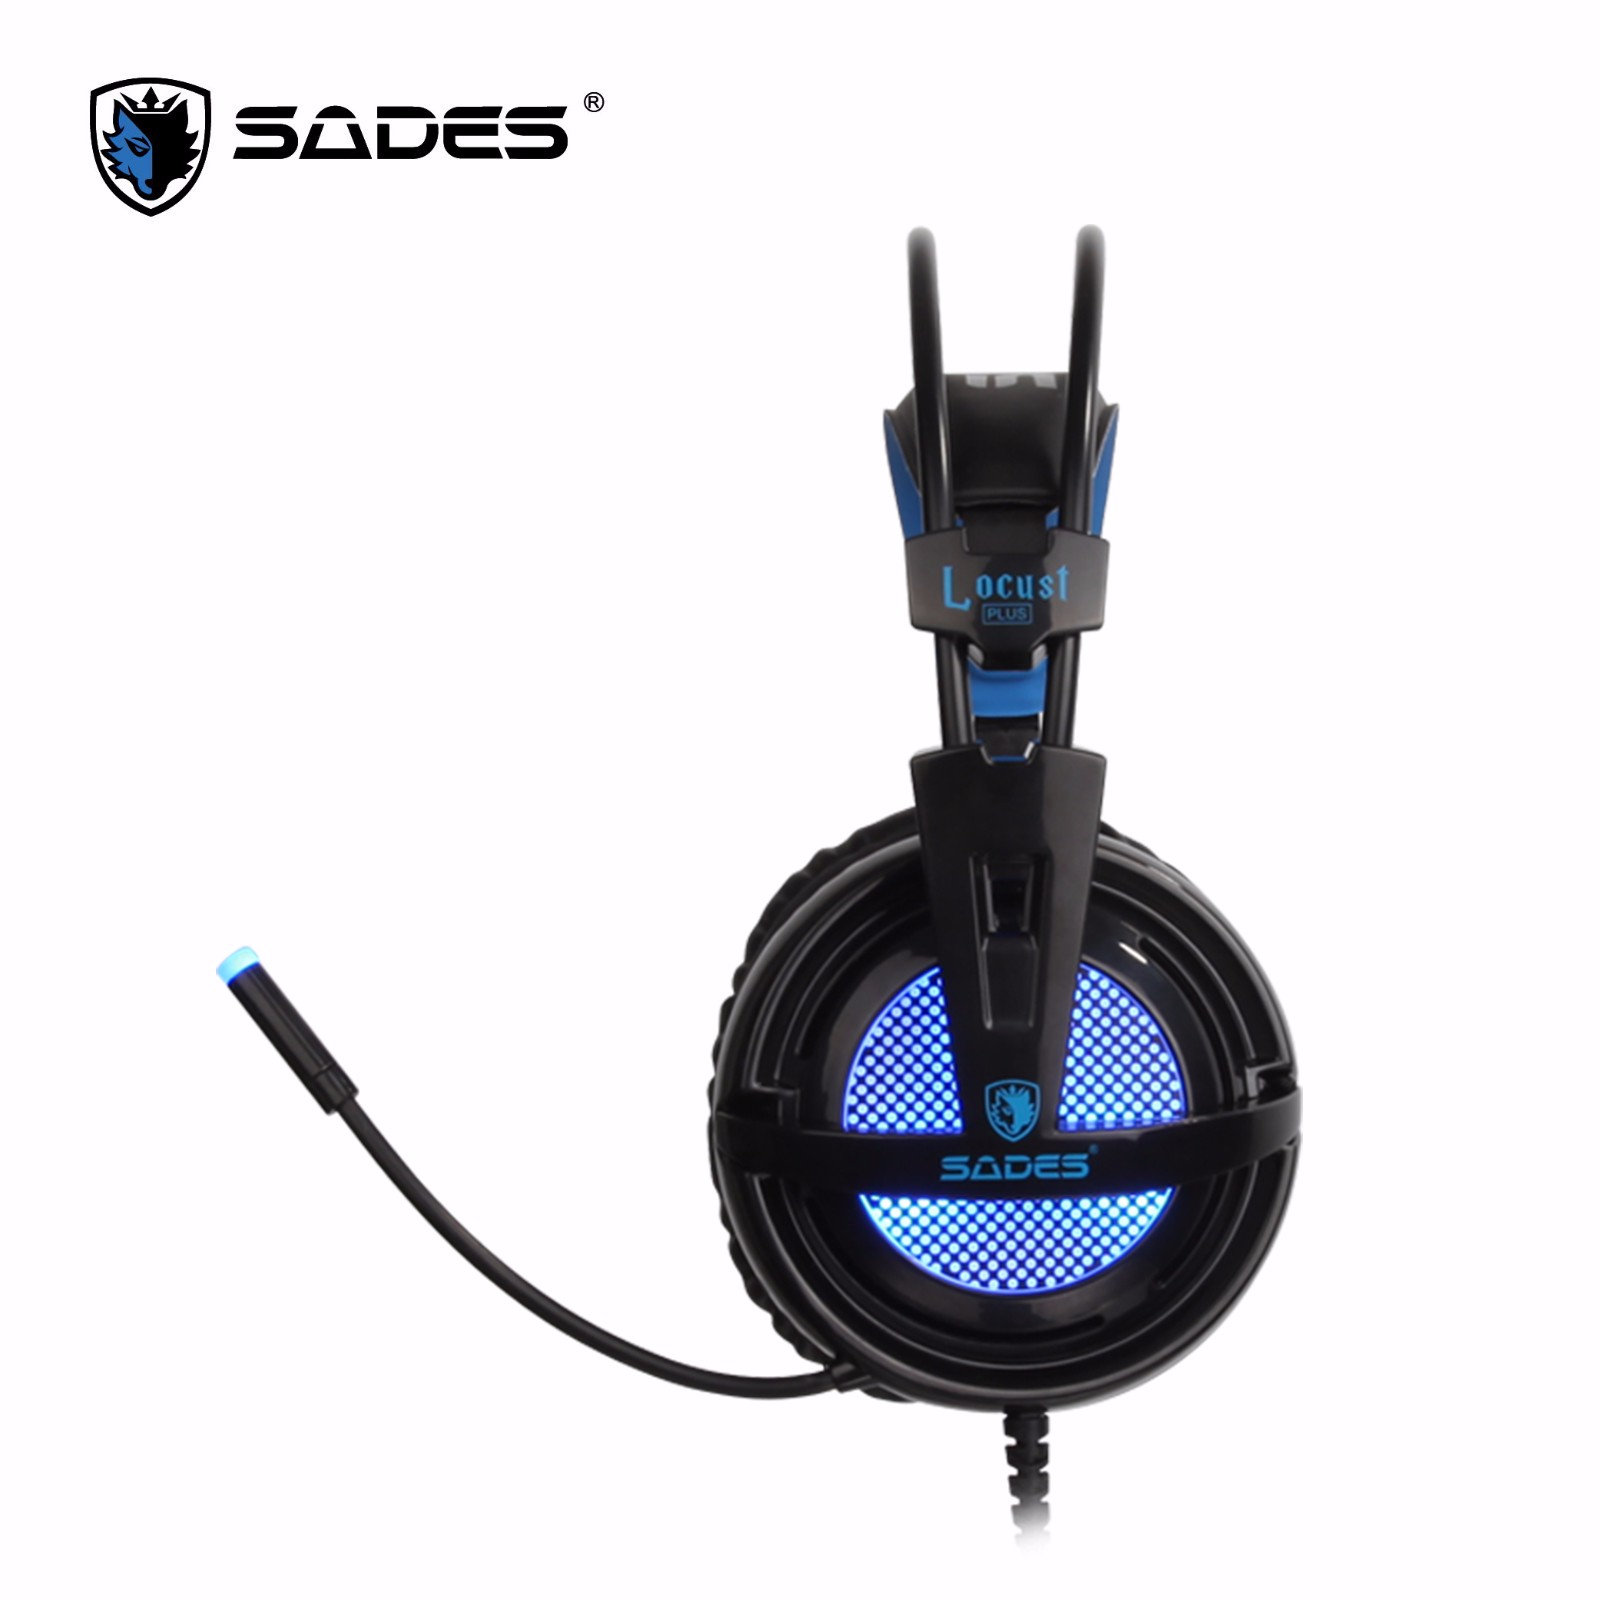 Sades Locust Plus Rgb71 Usb Nt1890 Knight Pro Bongiovi 71 Gaming Headset